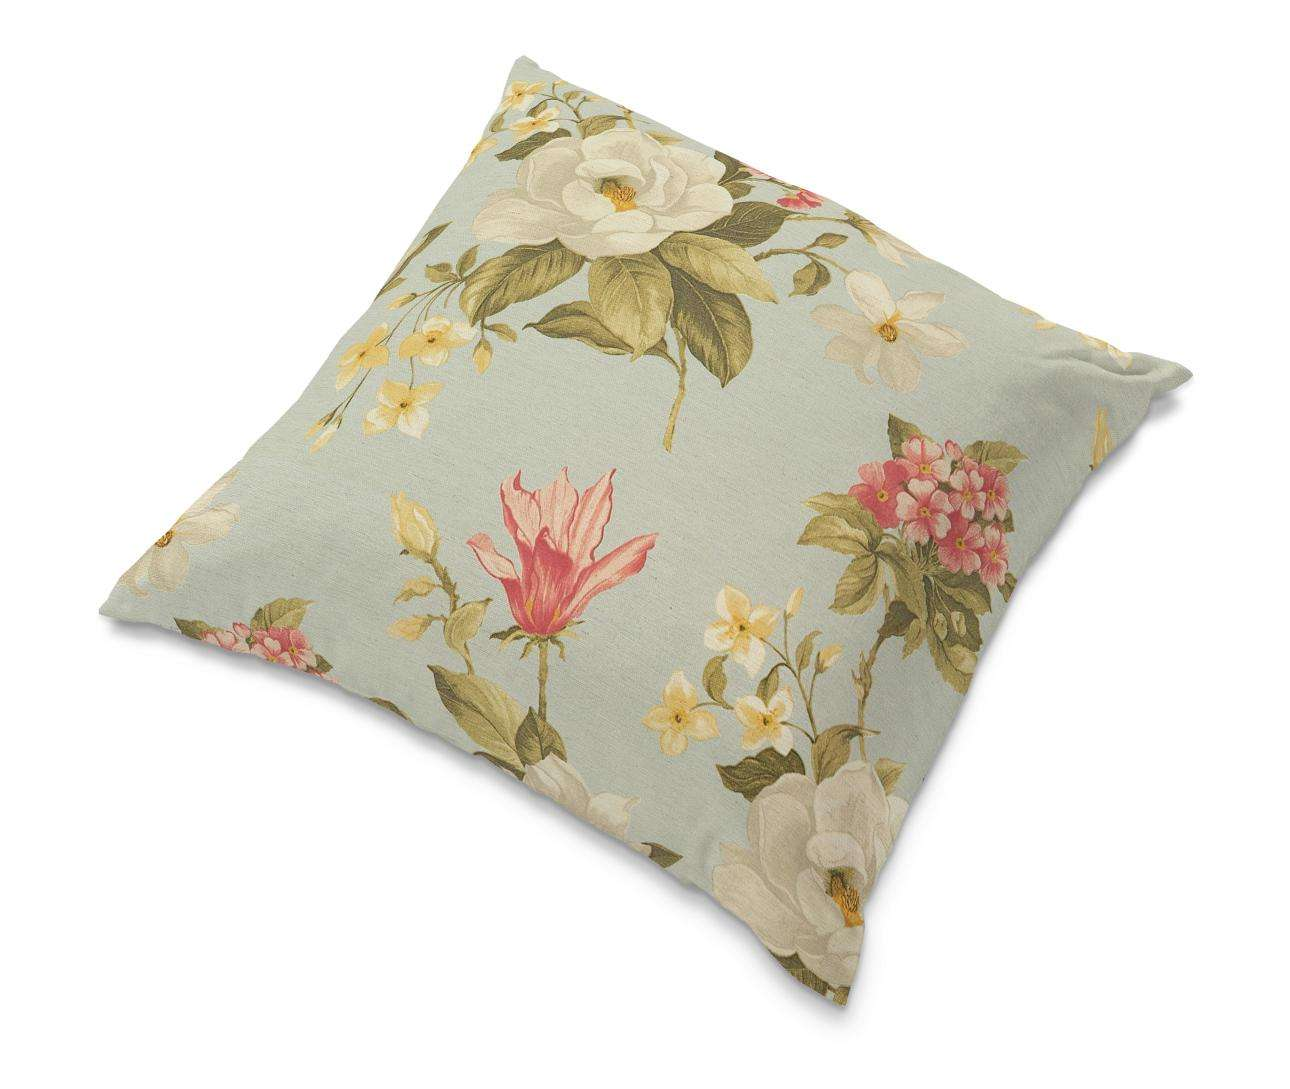 Tomelilla cushion cover 55 x 55 cm (22 x 22 inch) in collection Londres, fabric: 123-65